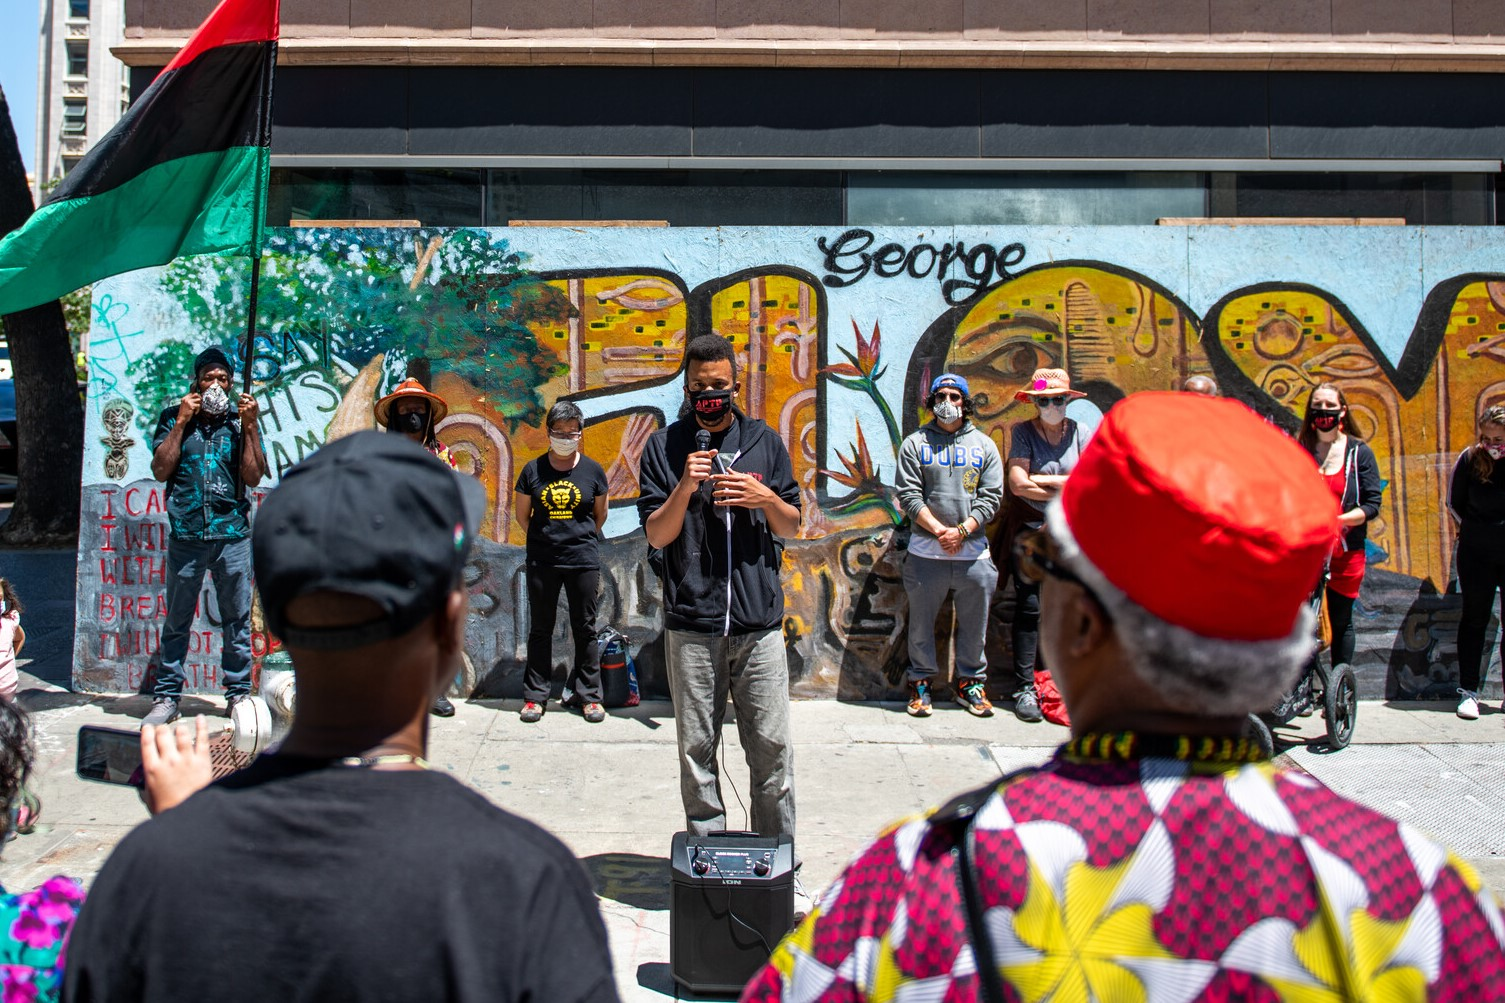 James Burch from Anti-Police Terror Project (APTP) speaks to a crowd in Oakland on May 25, 2021.